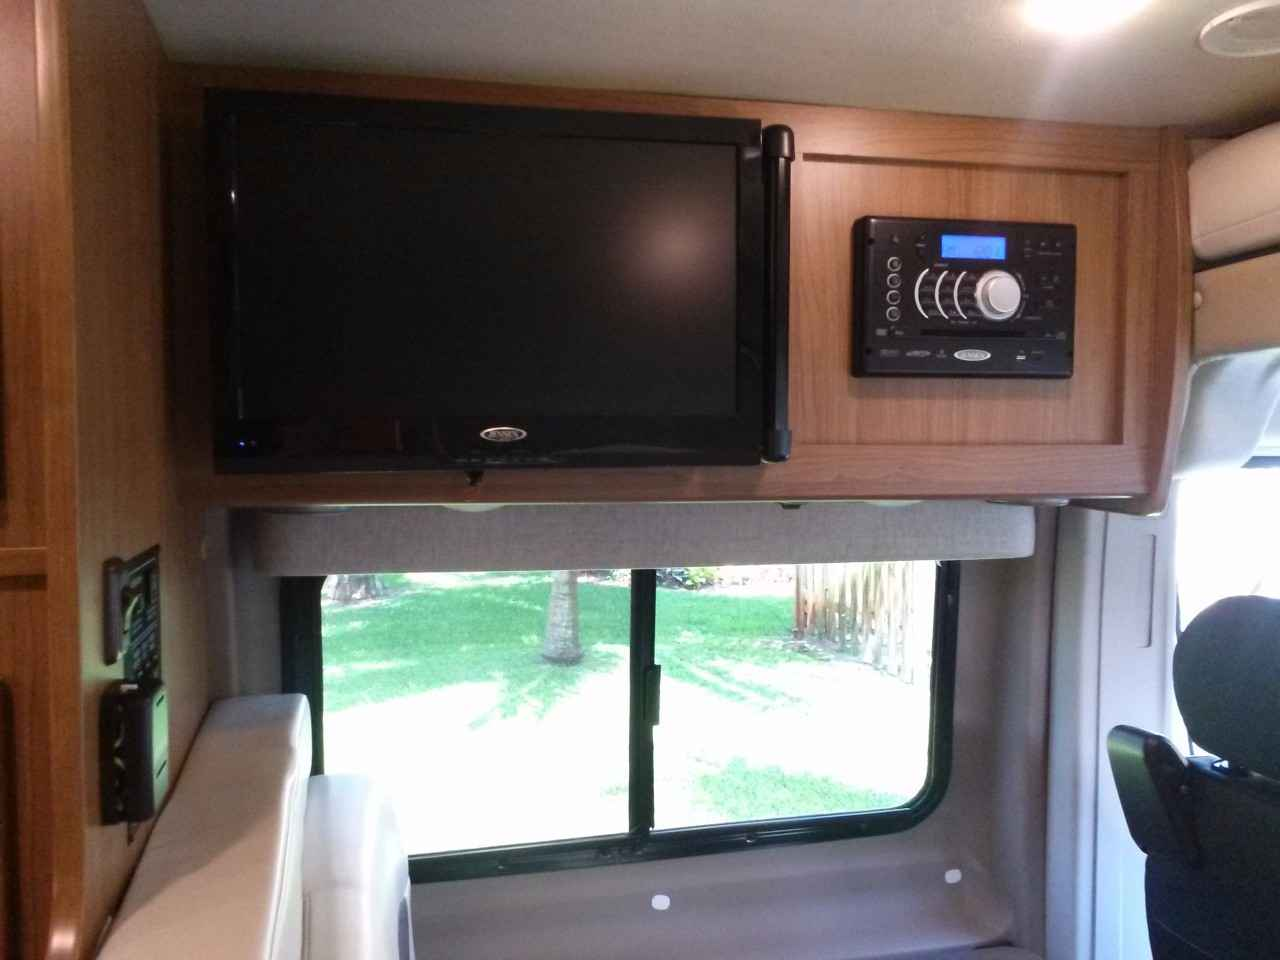 Innovative So Here It Is, Our 15K Mile Review Of The Winnebago  Sleeping In It Every Night, We Arrived Home Without Any Sort Of I Cant Wait To Get Out Of Here And Sleep In My Own Bed Kind Of Feelings Next, Well Look At Various Aspects Of The